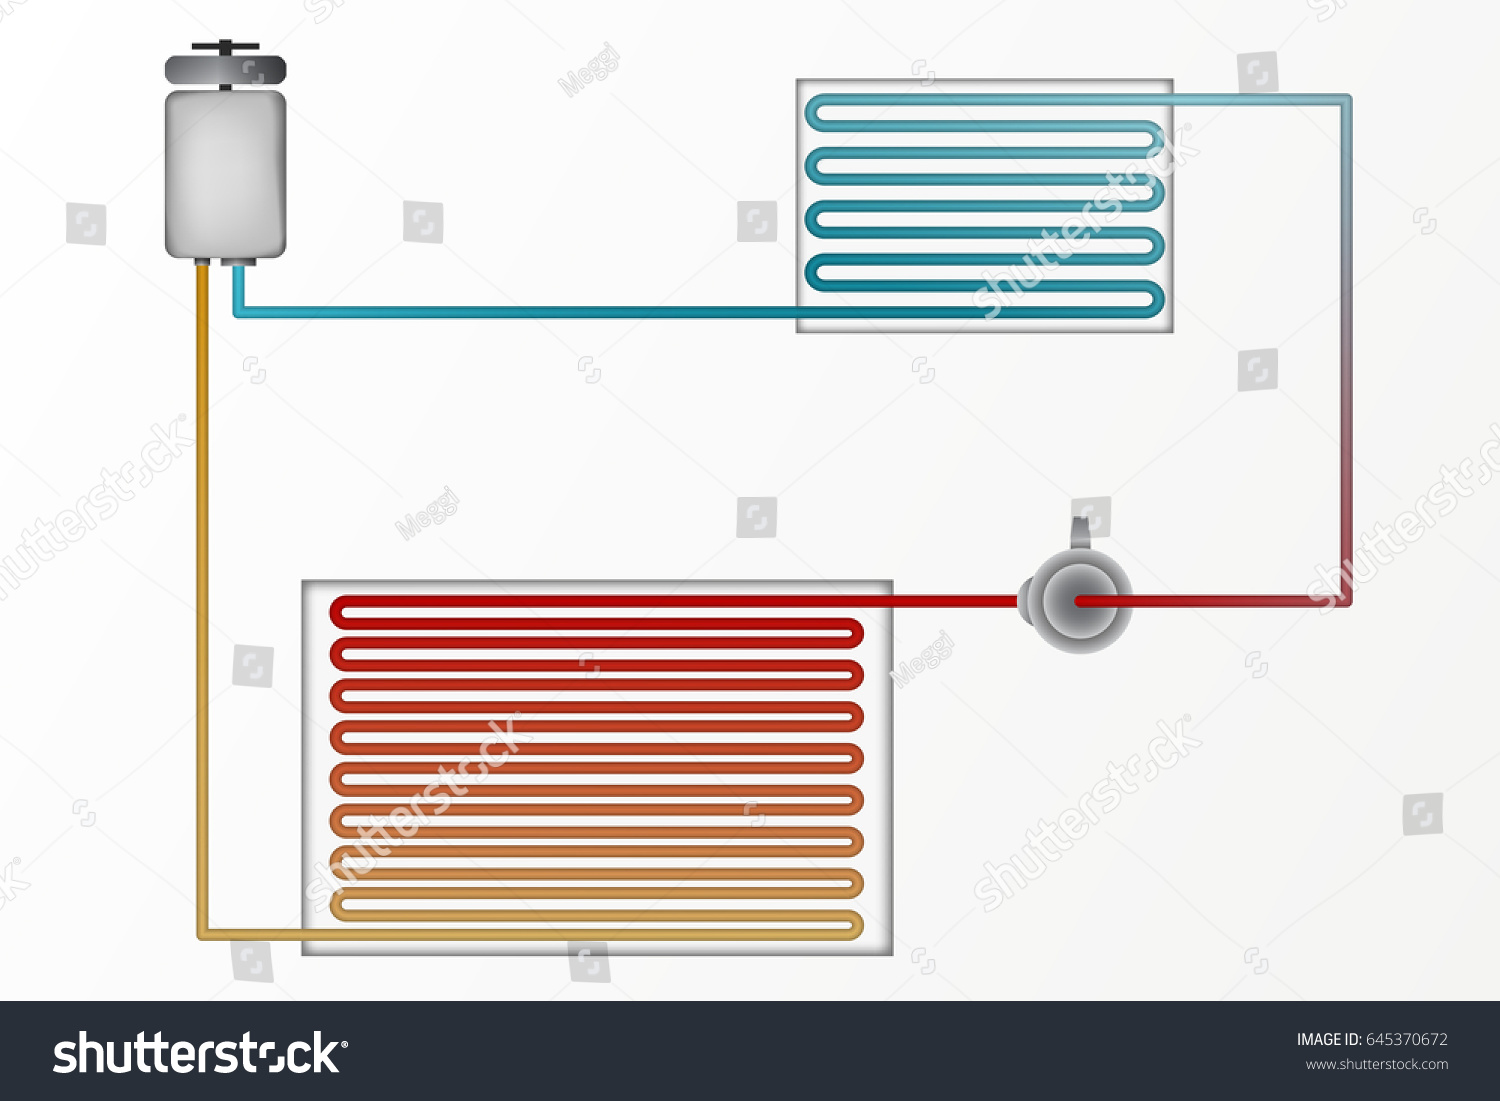 stock vector diagram of air conditioning vector illustration the technology of heating and cooling split 645370672 diagram air conditioning vector illustration technology stock air conditioning diagram at soozxer.org